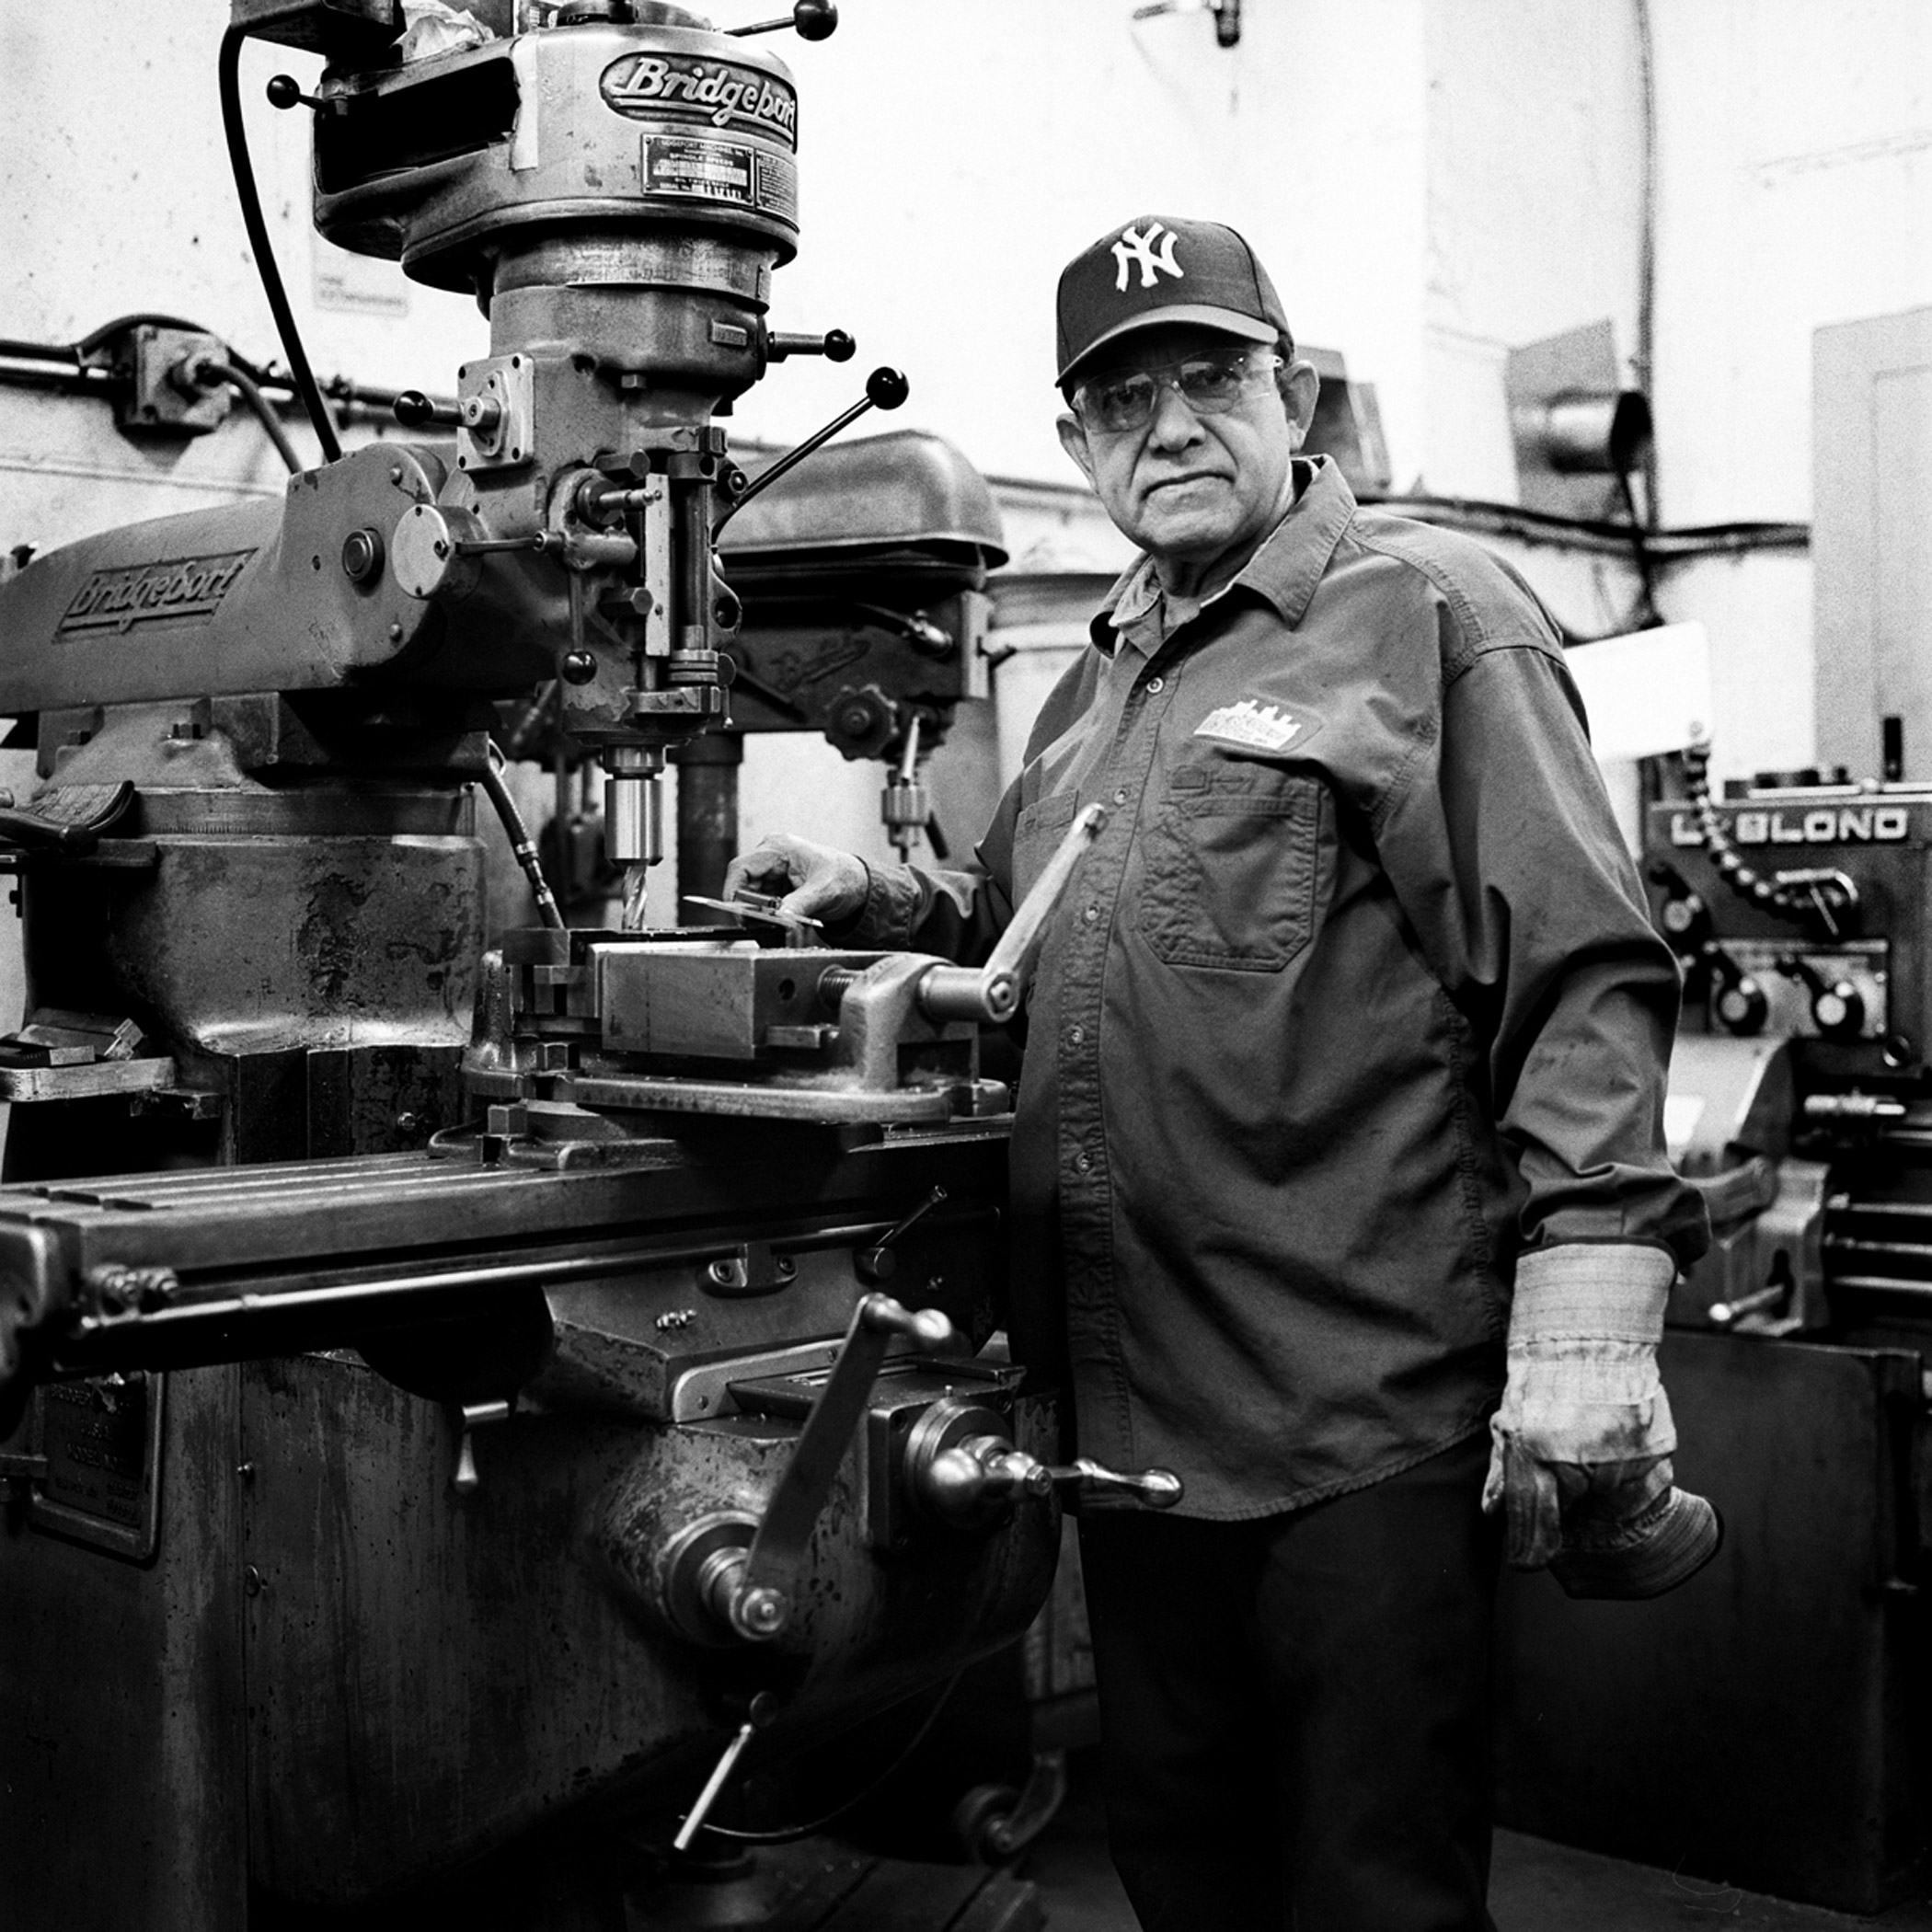 Mario, a machinist at Reinforcing Supply shop, stands with his driller in Williamsburg, Brooklyn, N.Y., November 2015.